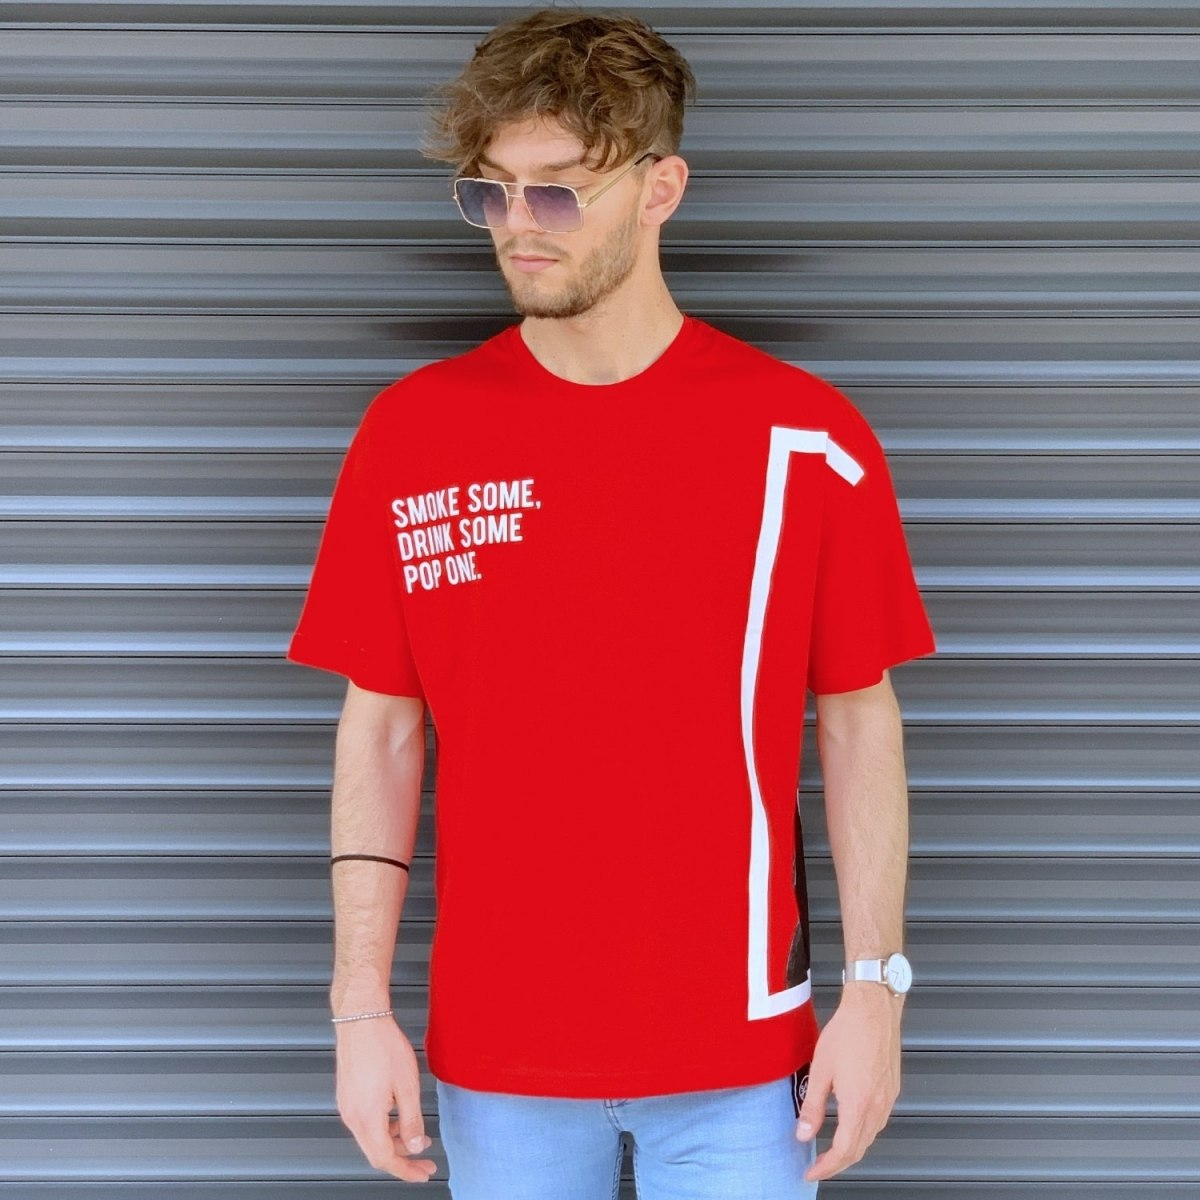 Men's Comfort Round Neck T-Shirt In Red Mv Premium Brand - 1